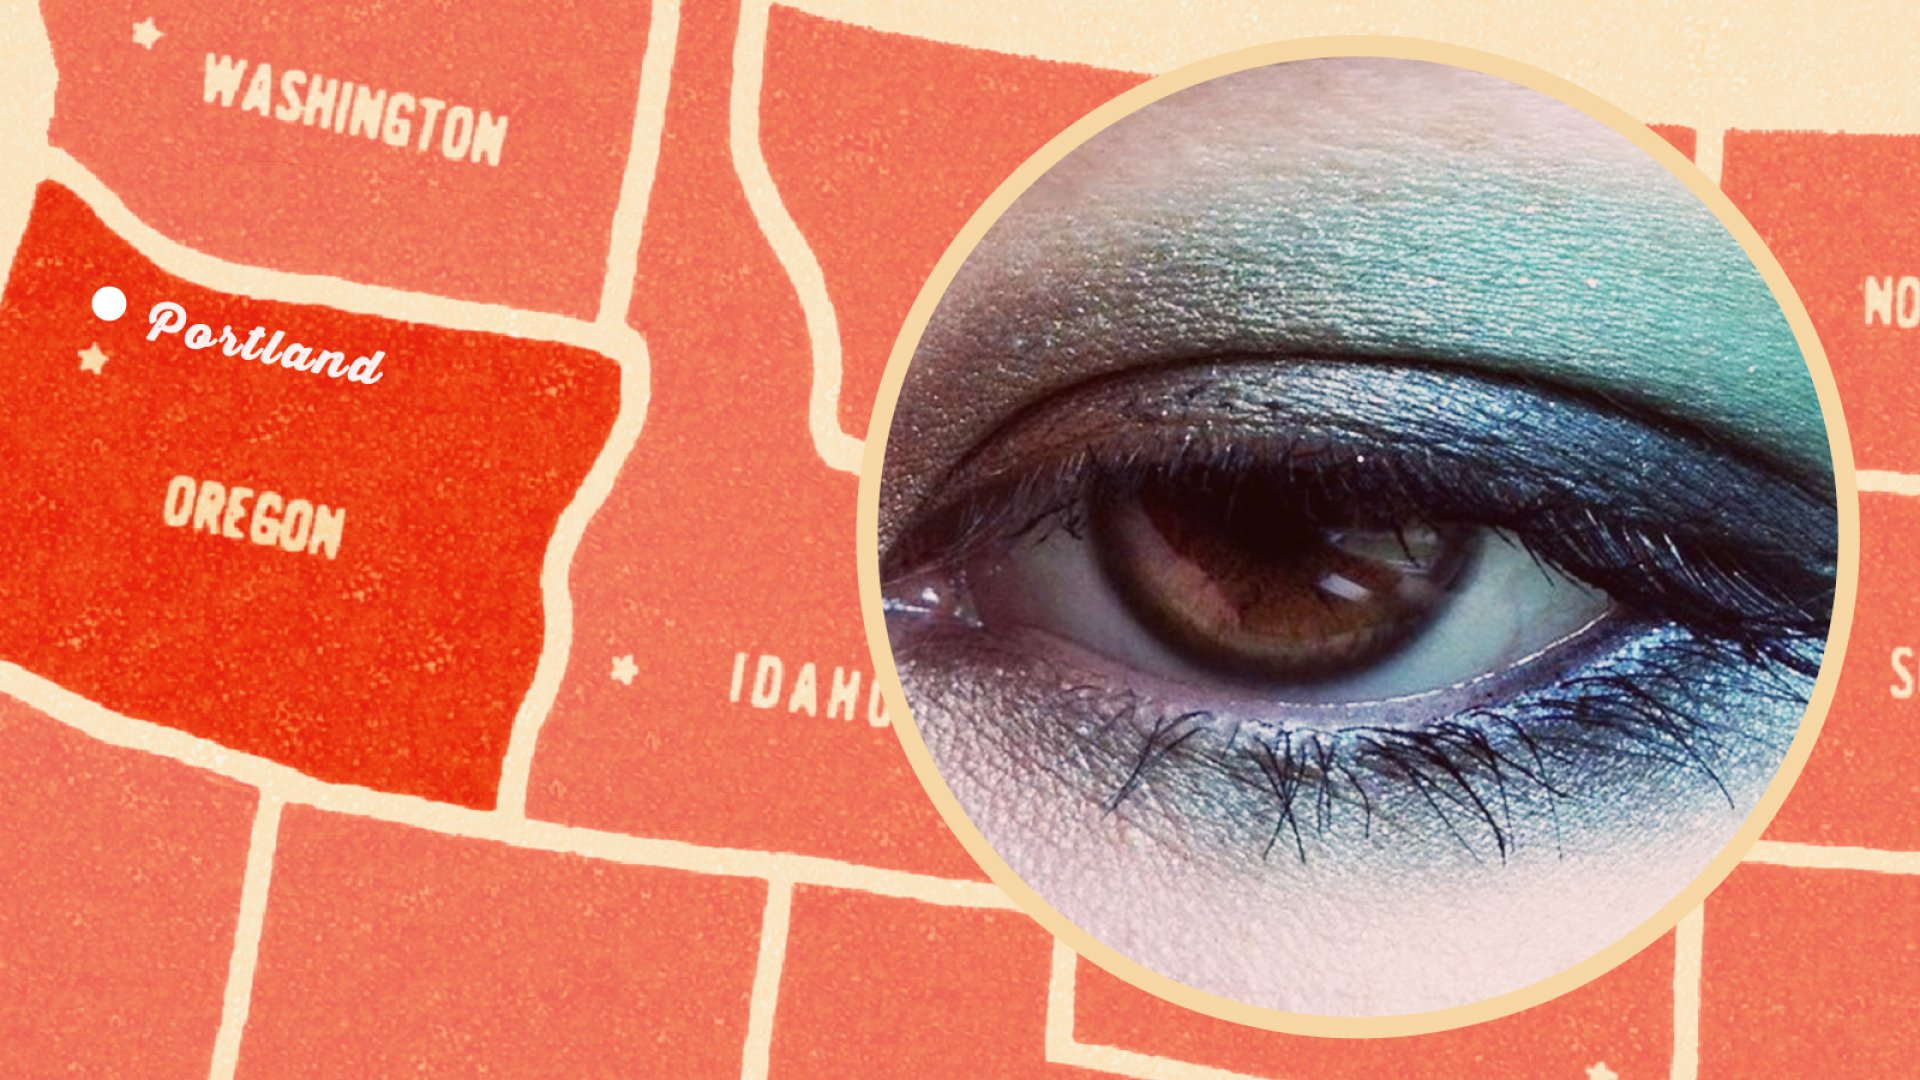 How This Makeup Company Is Nailing Its Niche: Making Nerds Sparkly